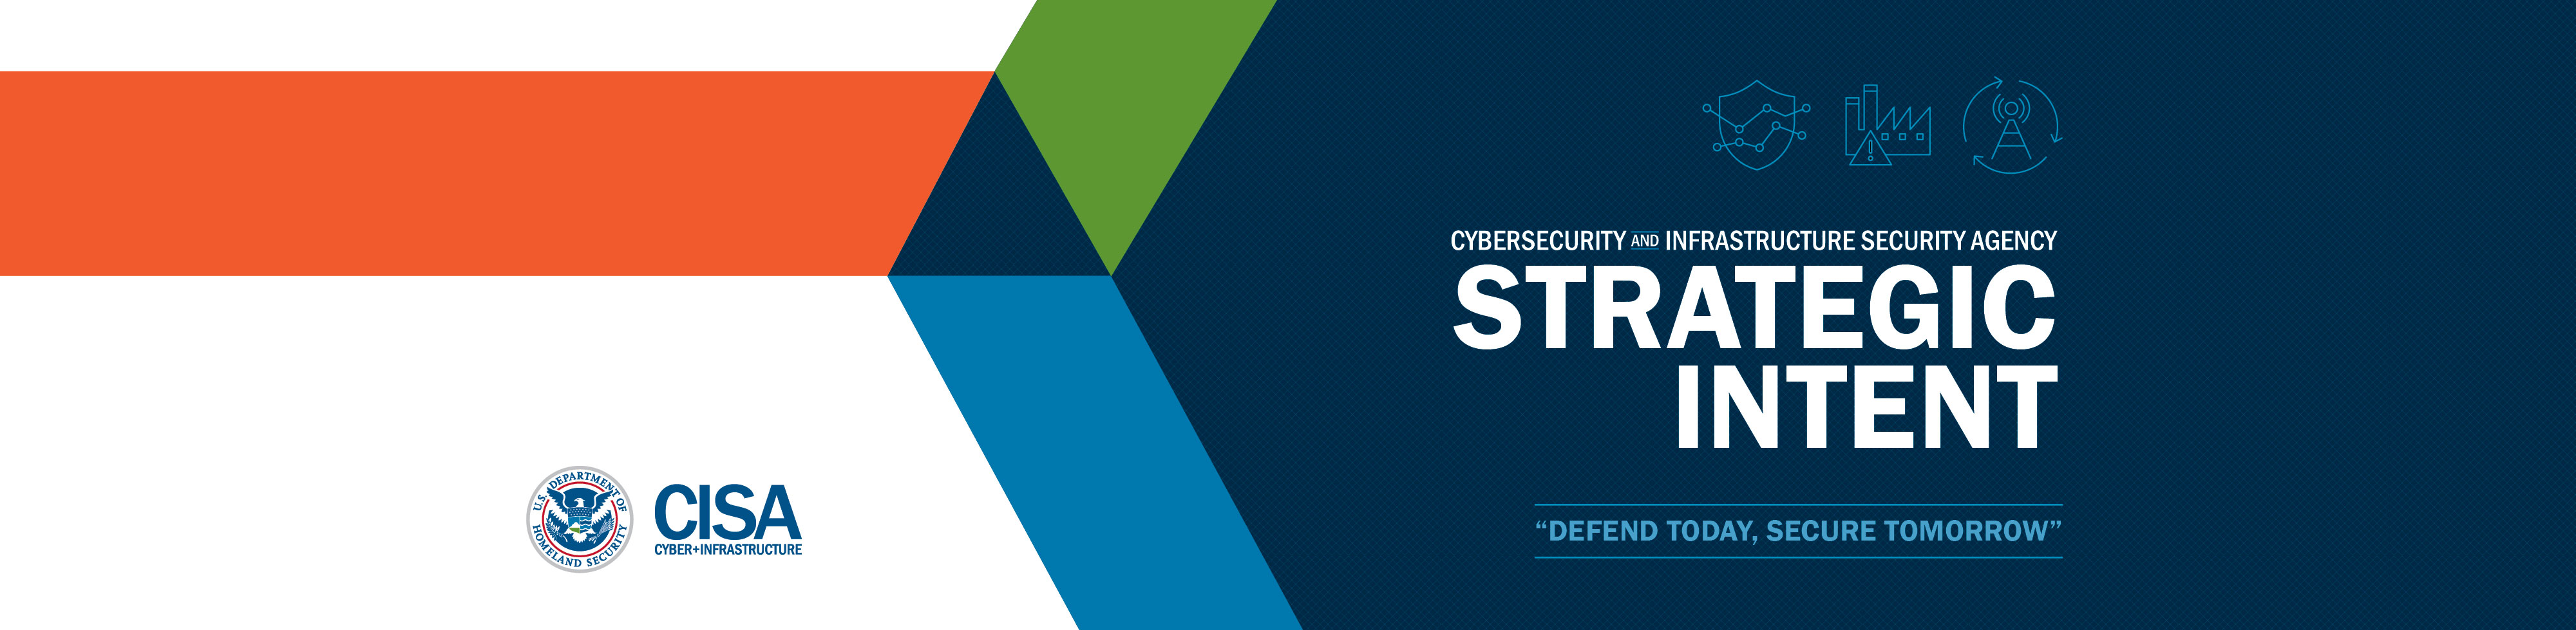 Cybersecurity and Infrastructure Security Agency Strategic Intent - Defend Today, Secure Tomorrow